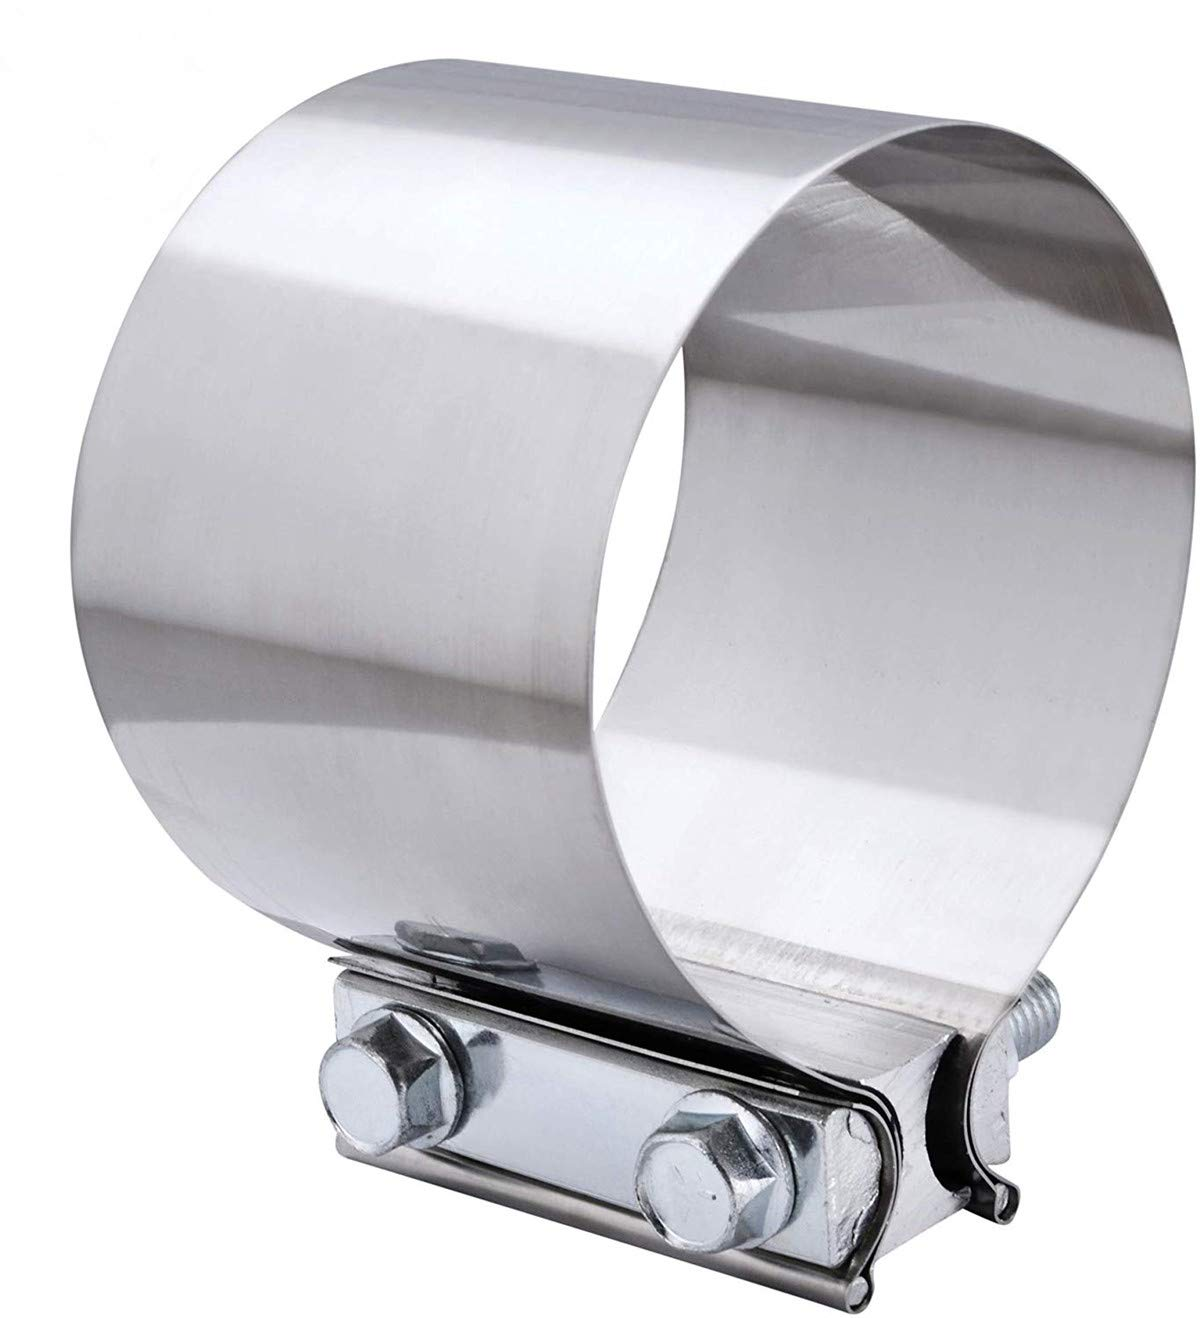 EVIL ENERGY 4.0 Inch Butt Joint Exhaust Band Clamp Sleeve Stainless Steel 2pcs